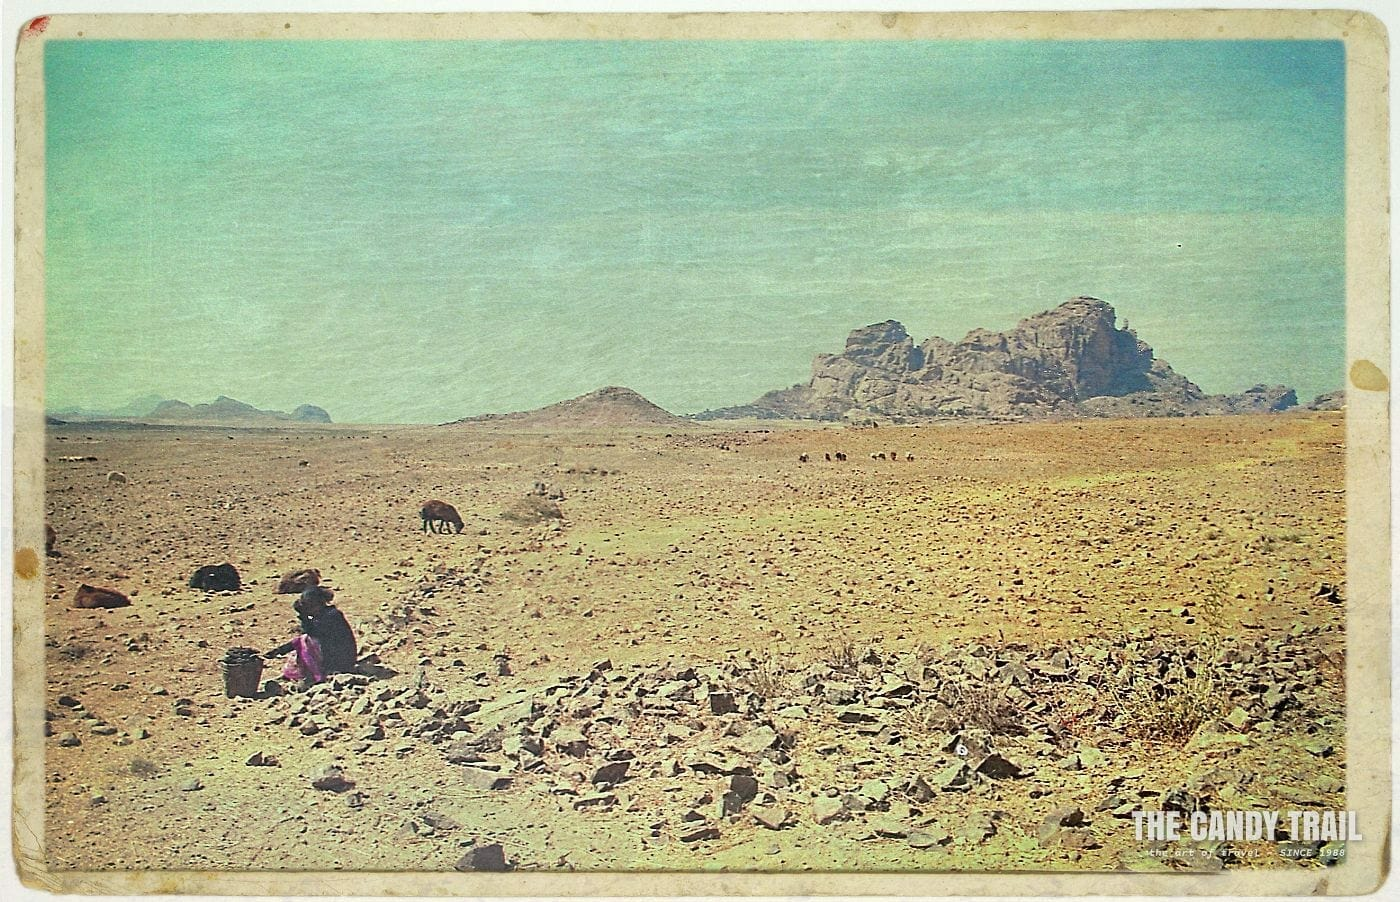 Shepard with flock in the arid surrounds of matara in southern Eritrea